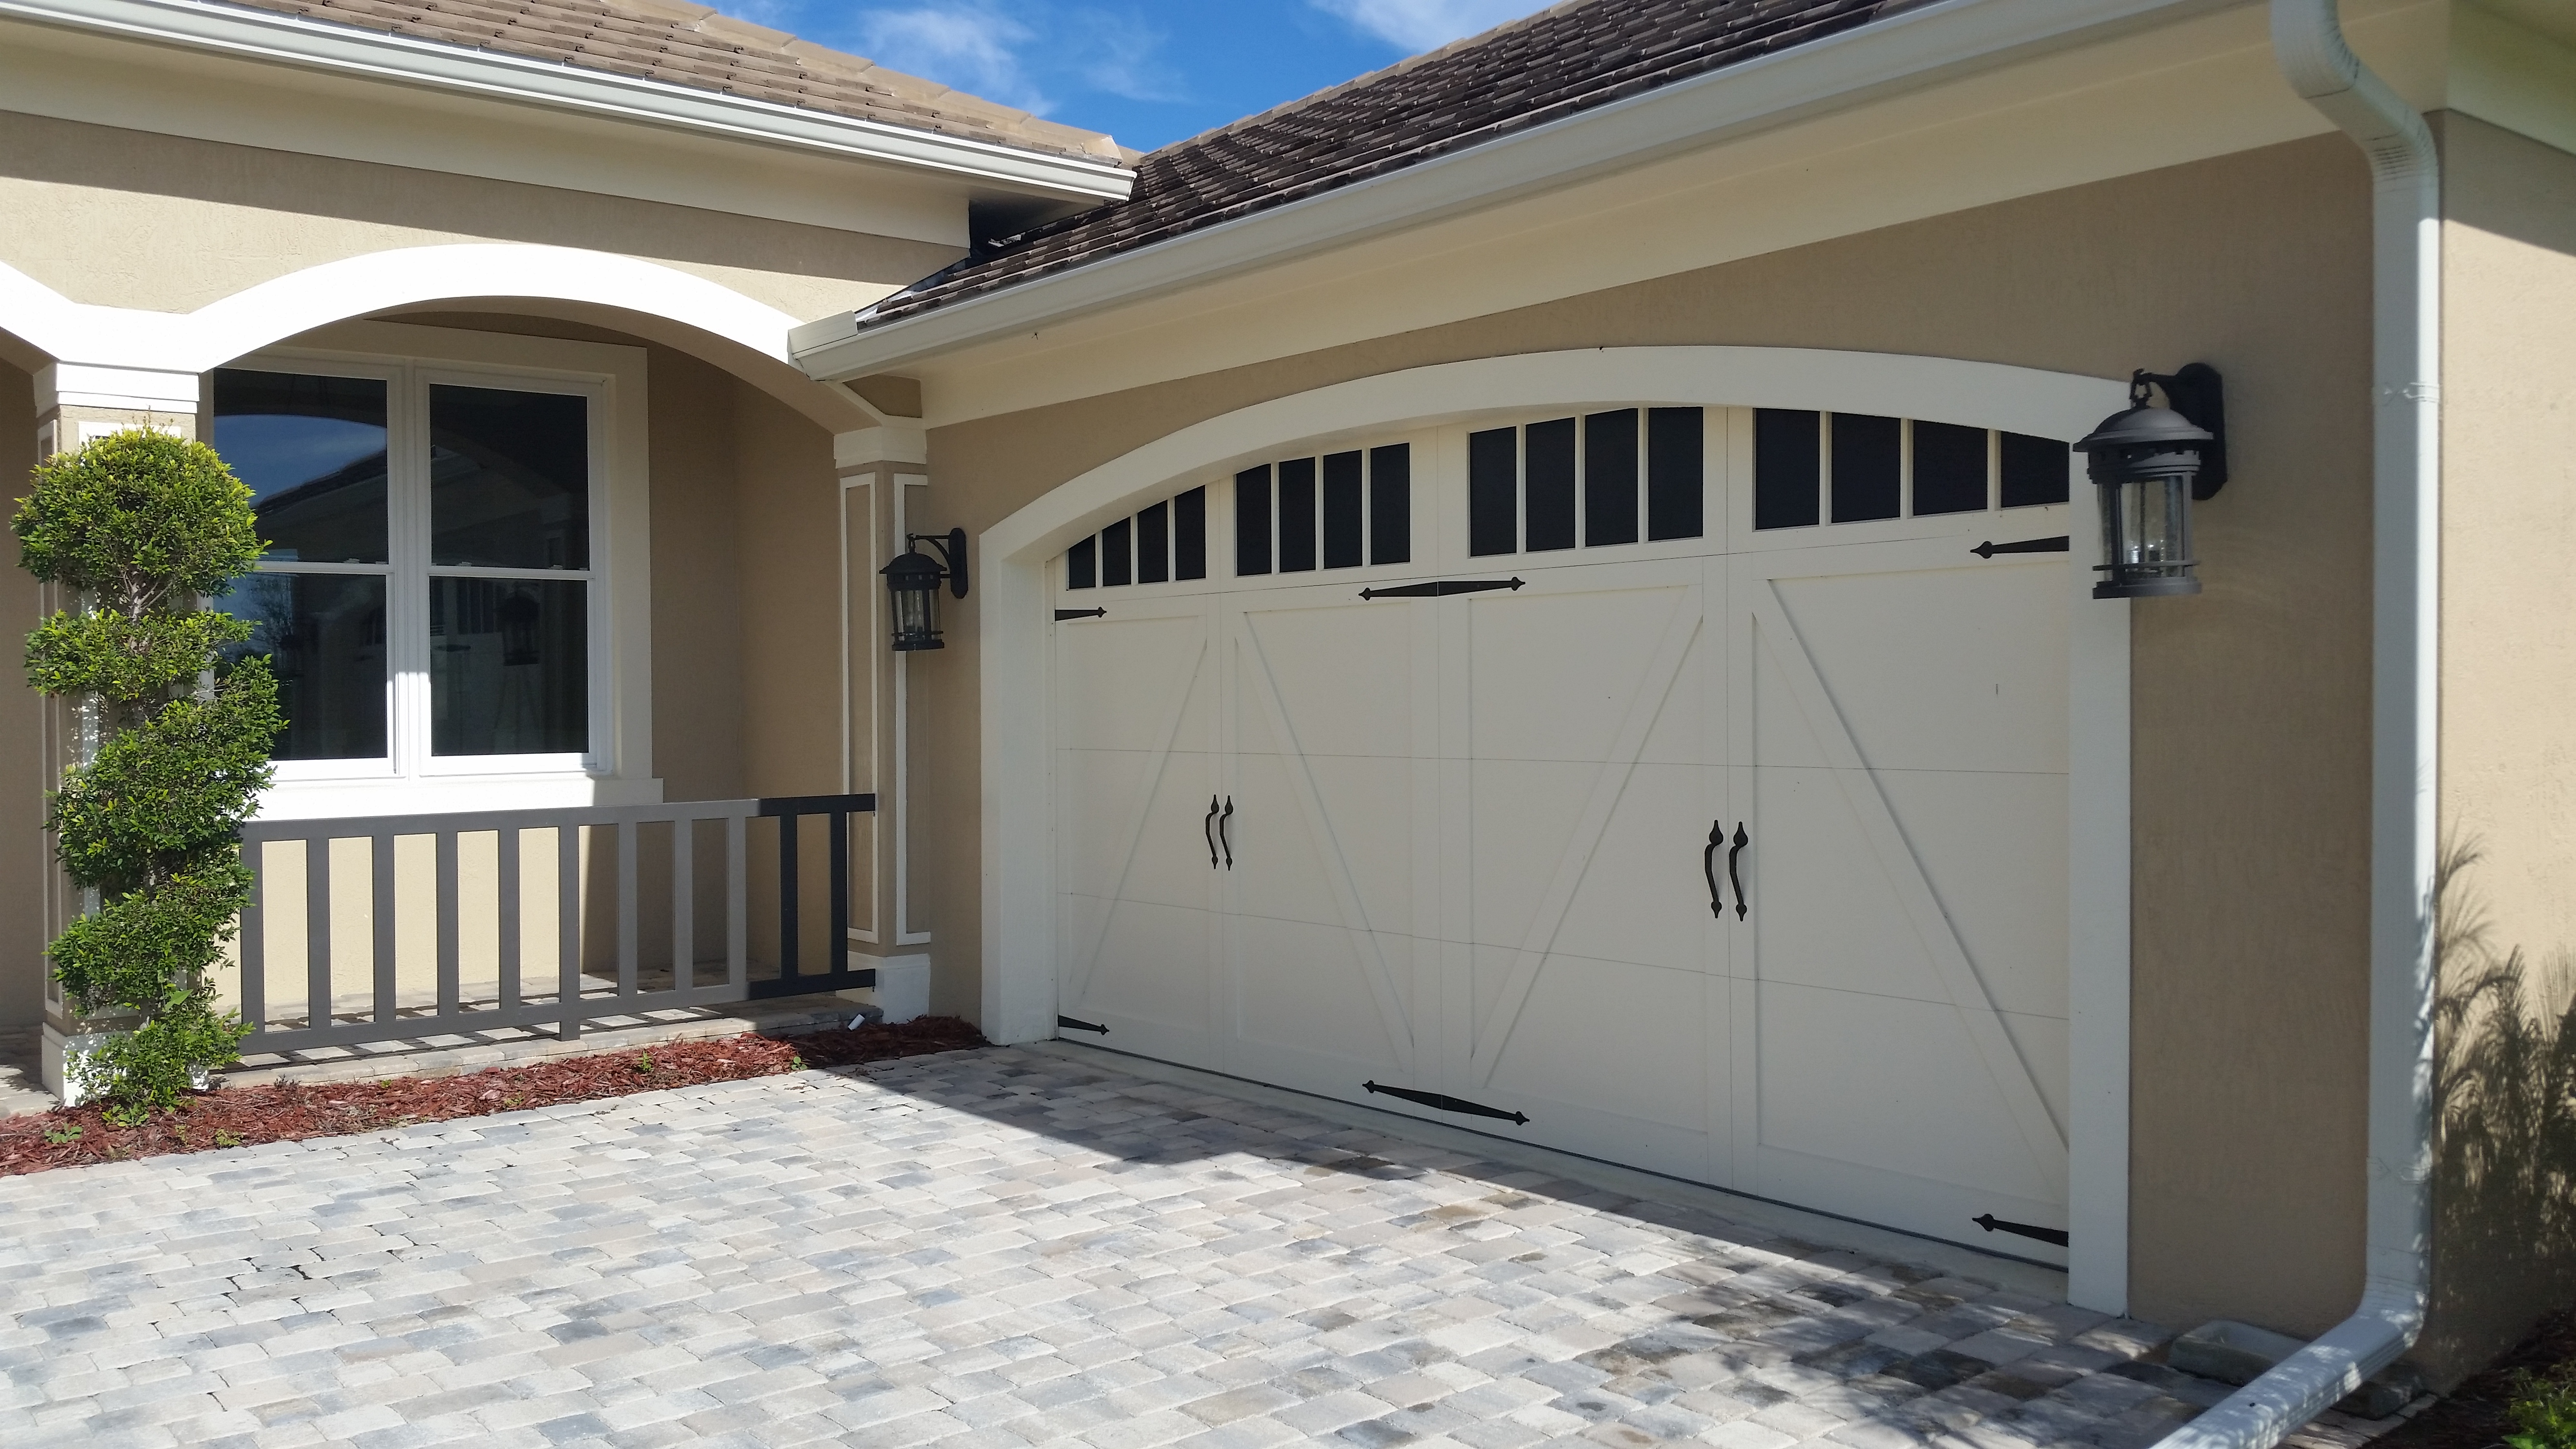 dyf project ocala advantages full your home door garage trend design together expensive fl with for repair size functions essential ideas beneficial best important of tumblr jacksonville